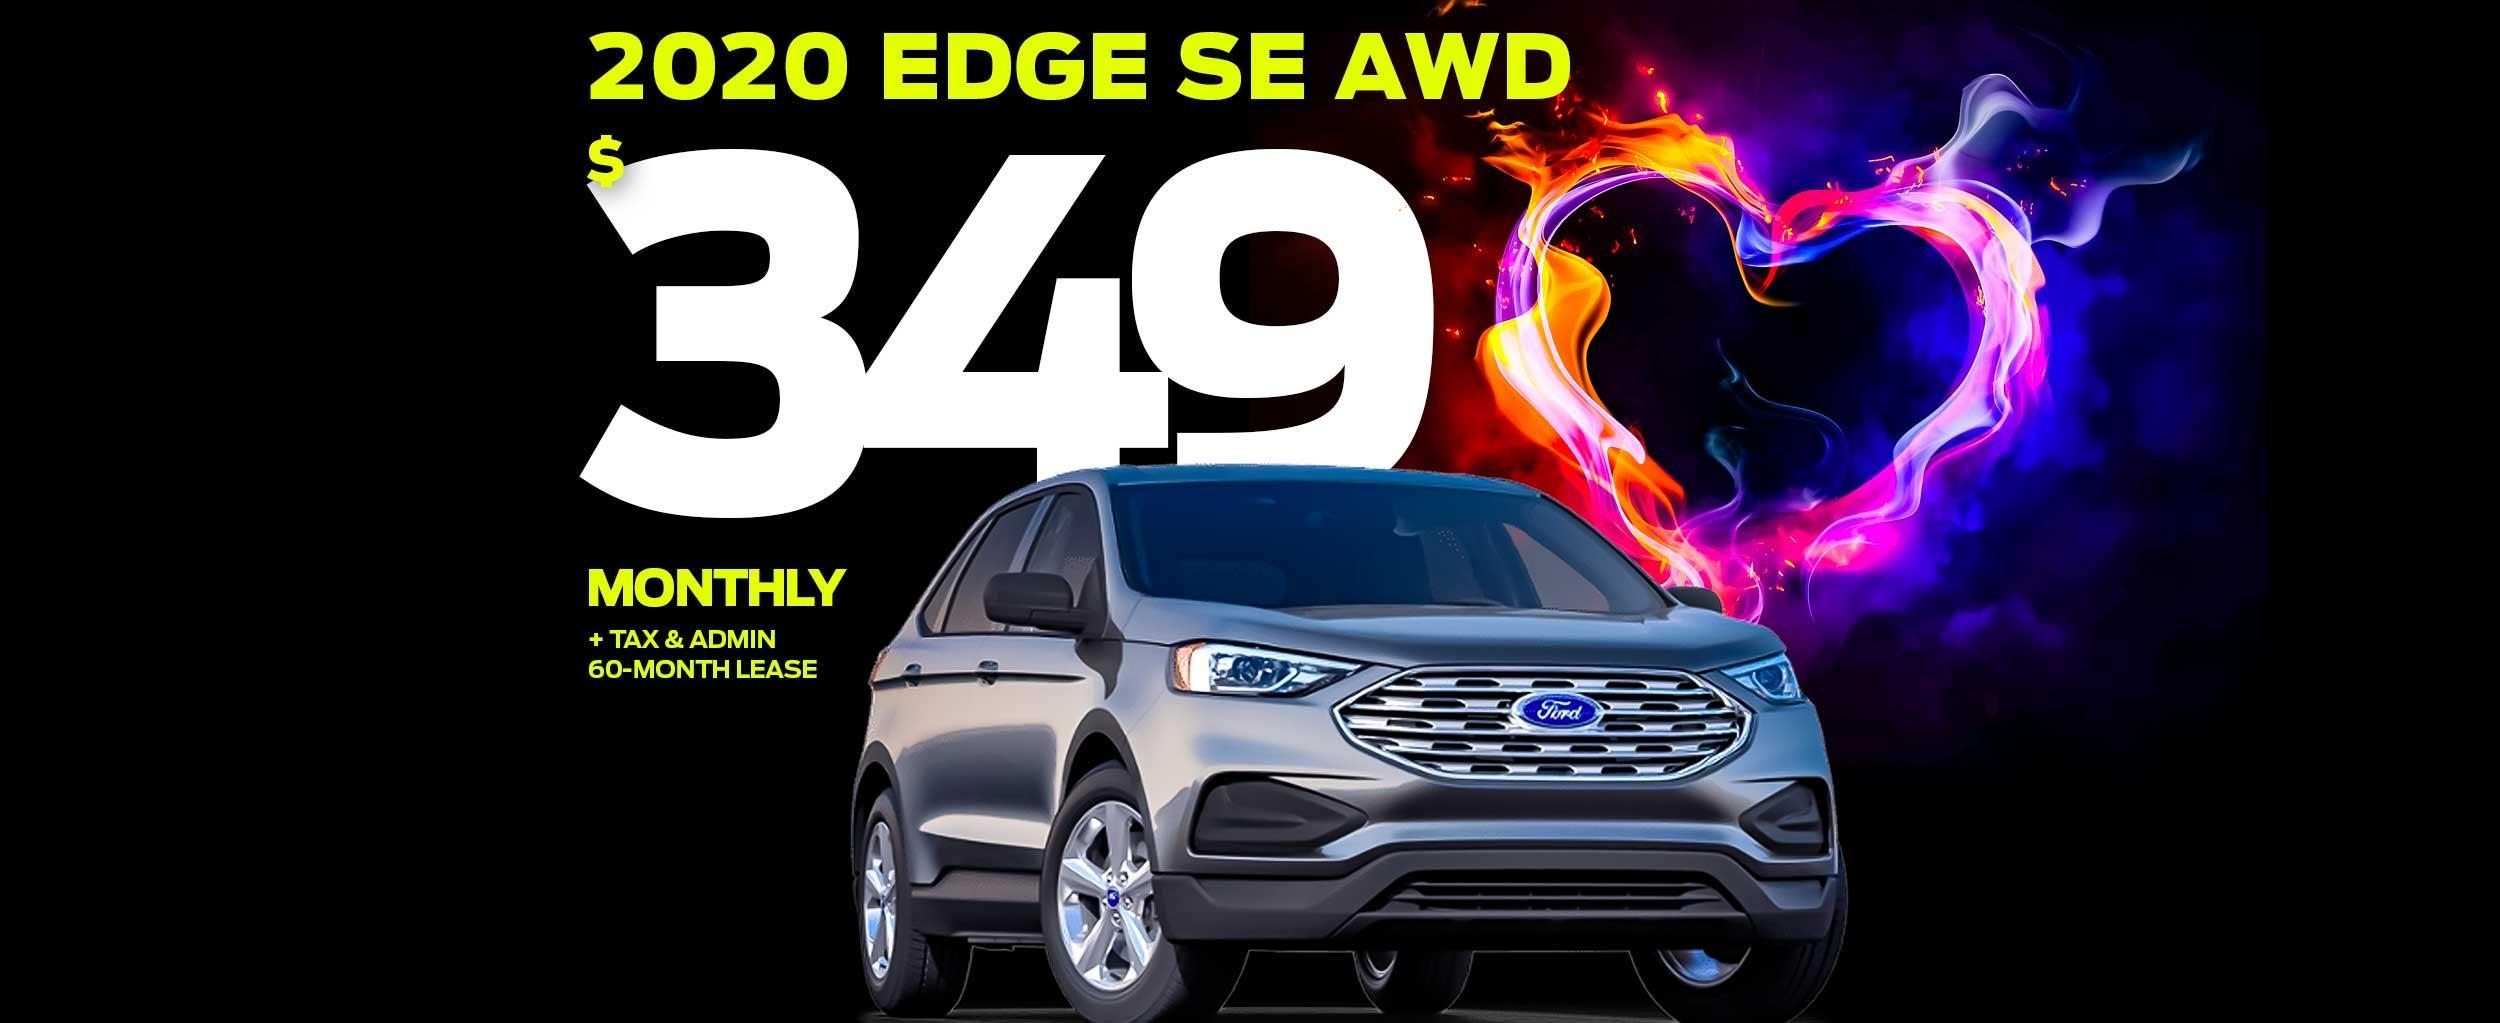 Lease the 2020 Edge SE AWD for ONLY $349 monthly + tax & admin!